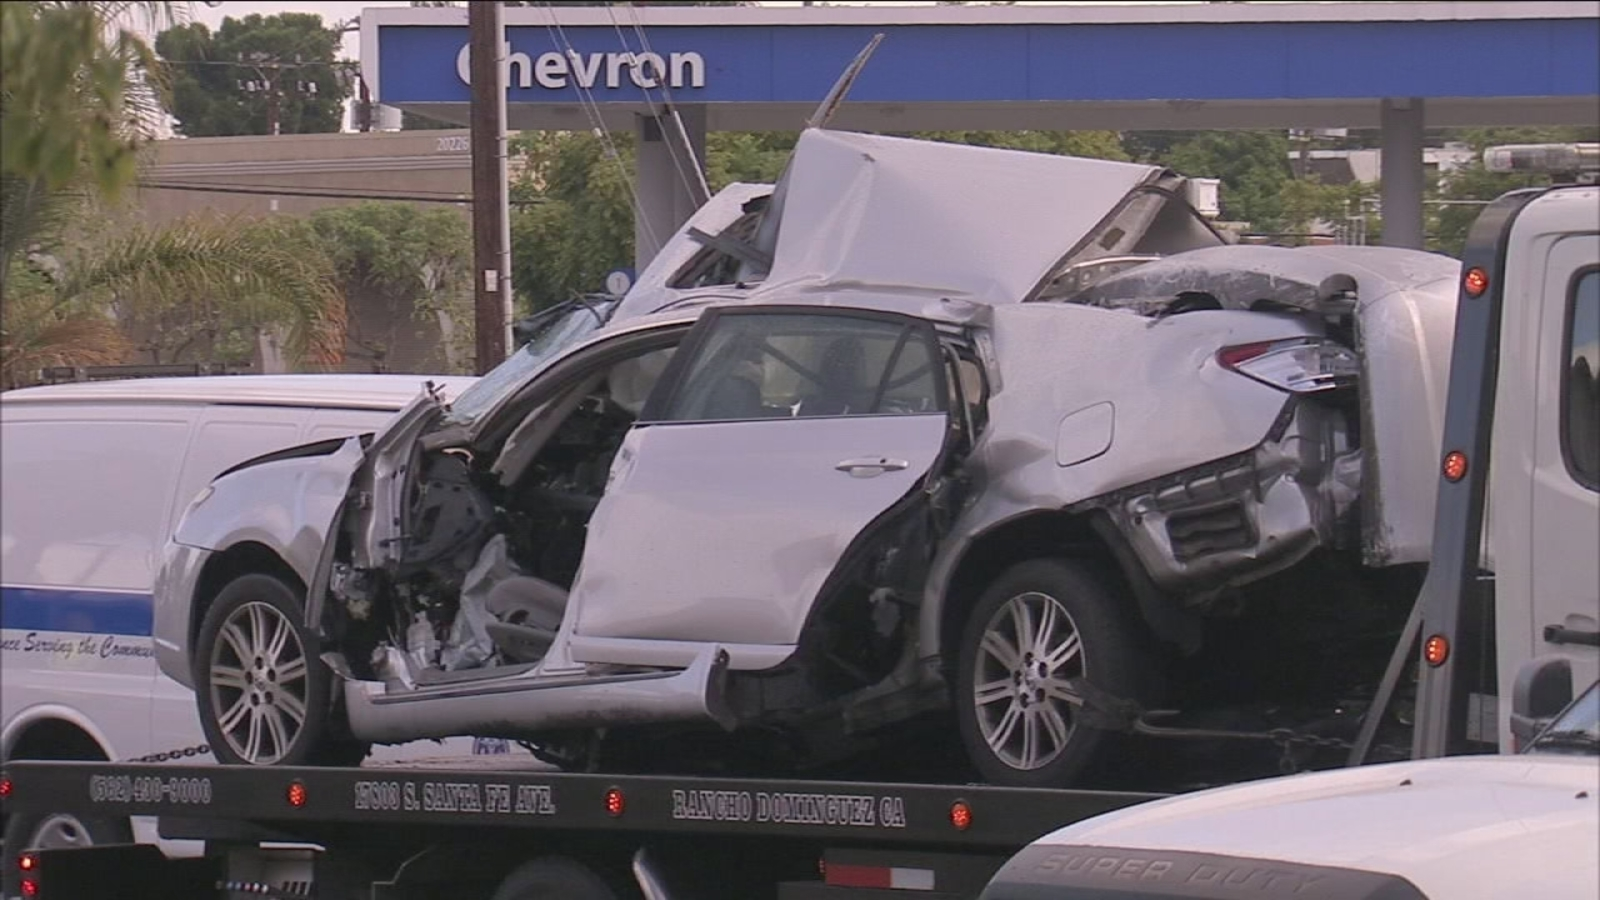 3 Killed In Early Morning 2 Vehicle Collision In Carson Abc7 Los Angeles Call an ambulance but not for me is a popular meme based on a video posted by las vegas gunfights. vehicle collision in carson